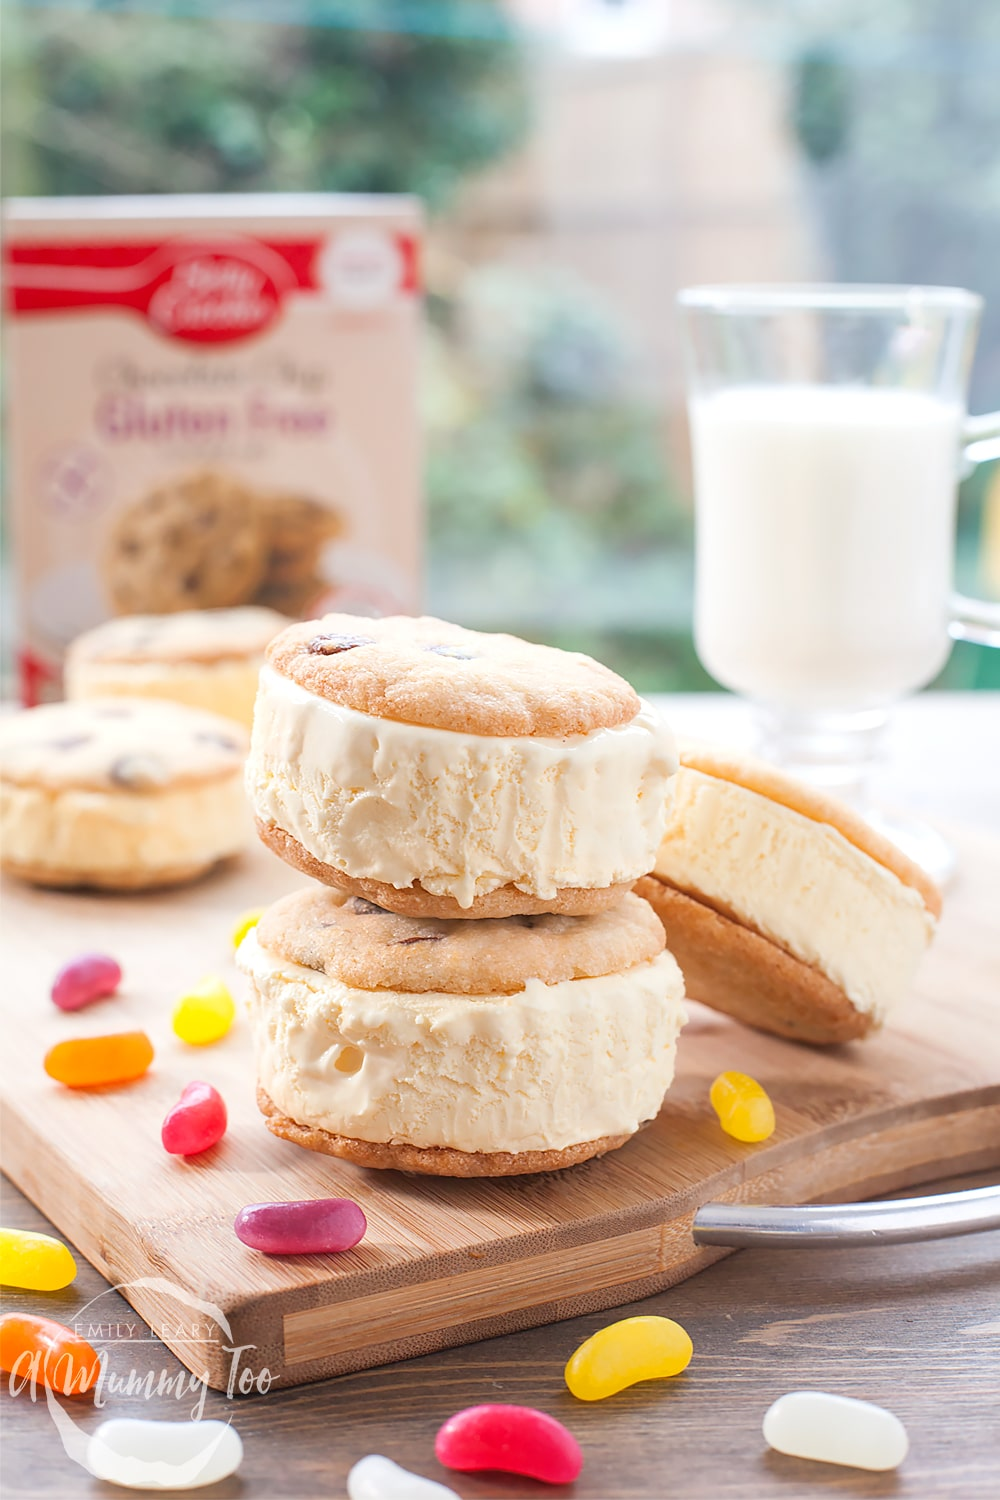 Gluten-free ice cream sandwiches made using Betty Crocker Gluten-Free Chocolate Chip Cookie Mix - served with jelly beans!